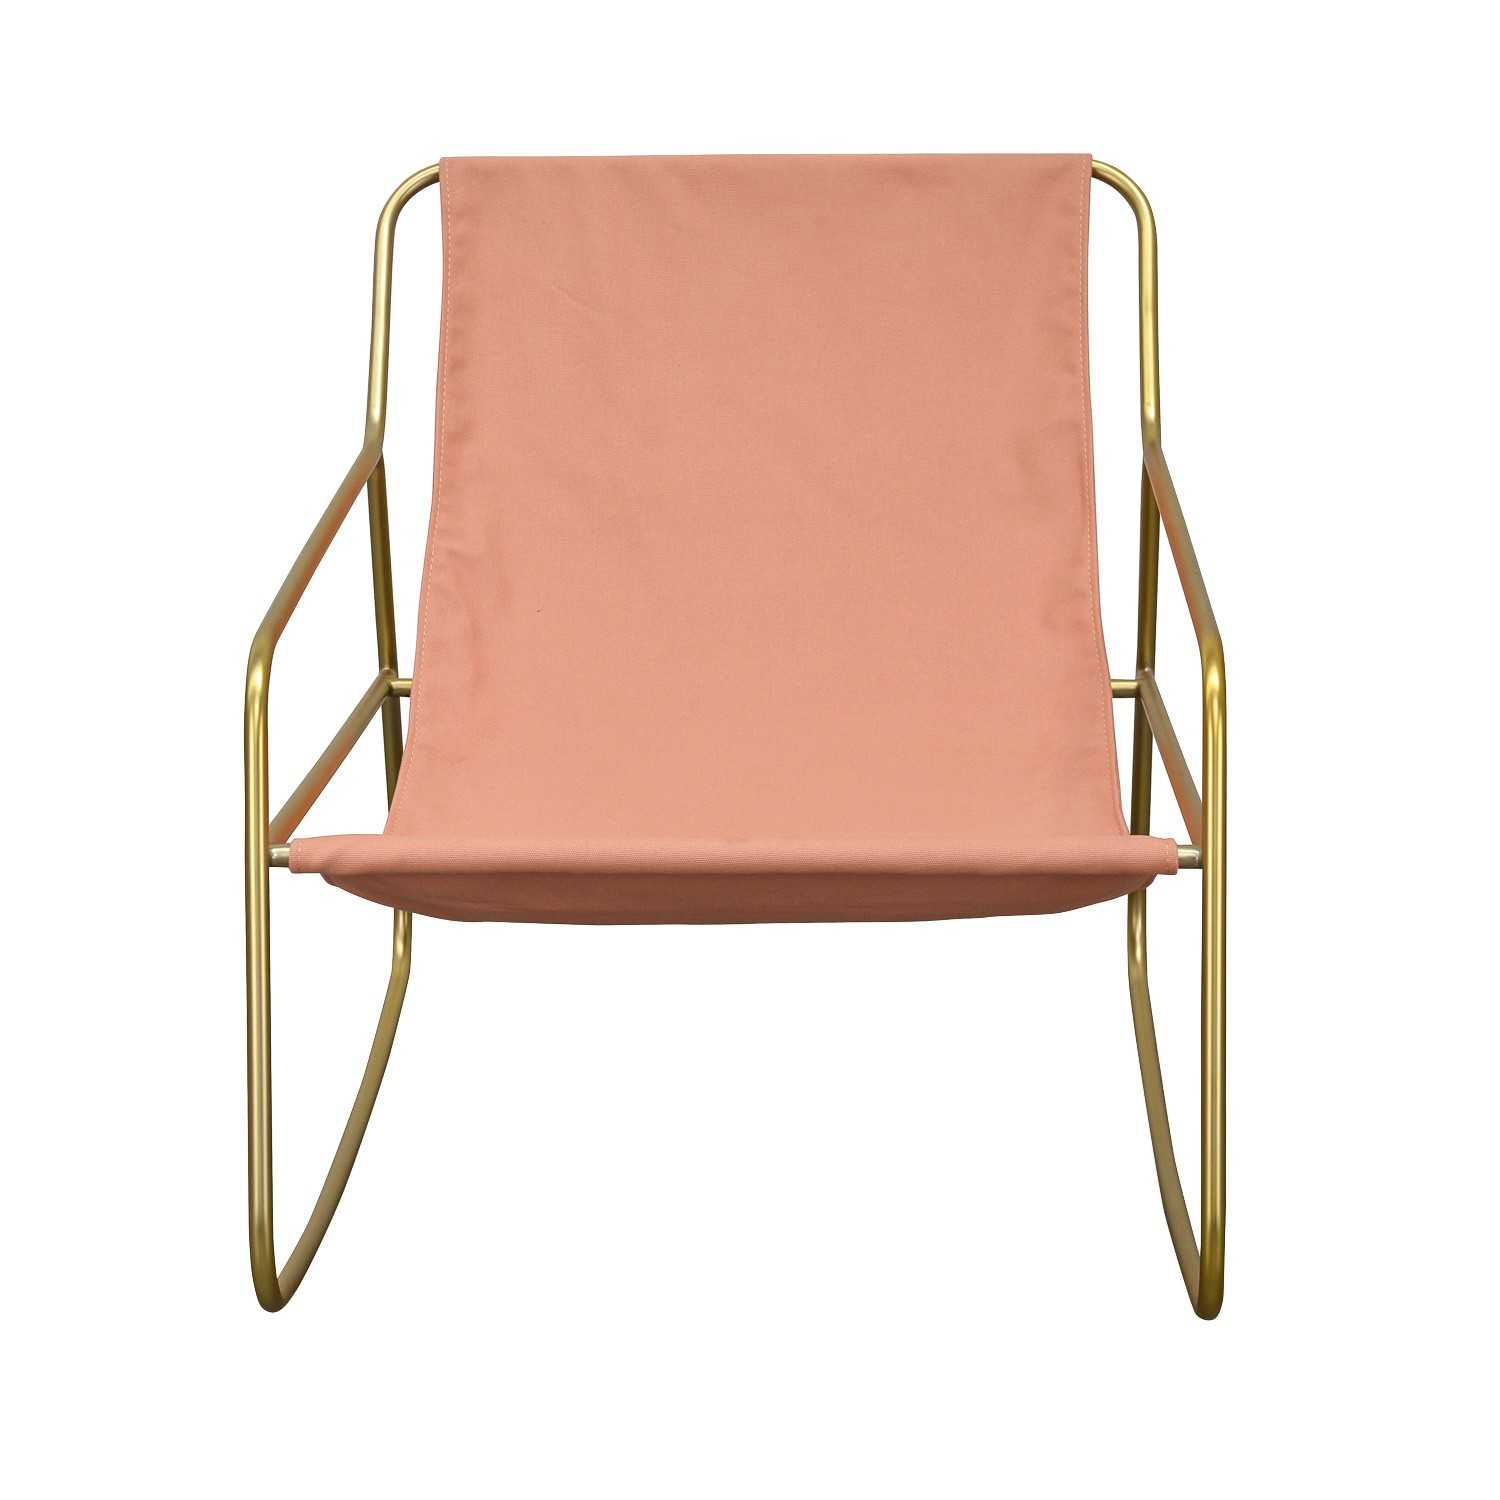 Zola Metal & Canvas Rocking Lounge Armchair, Blush / Gold